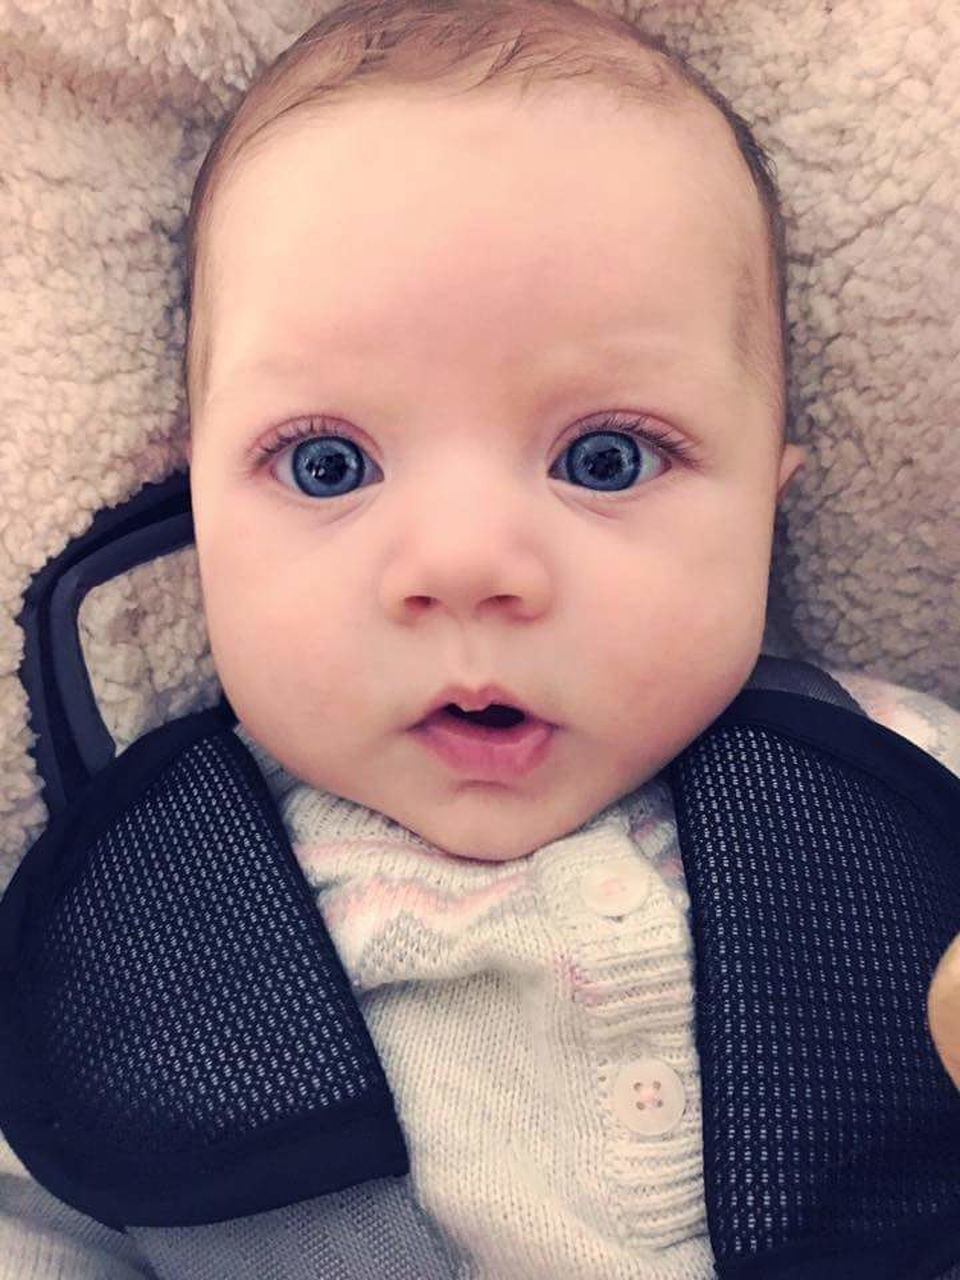 baby, looking at camera, babyhood, portrait, innocence, cute, babies only, childhood, indoors, close-up, one person, real people, sitting, human body part, day, people